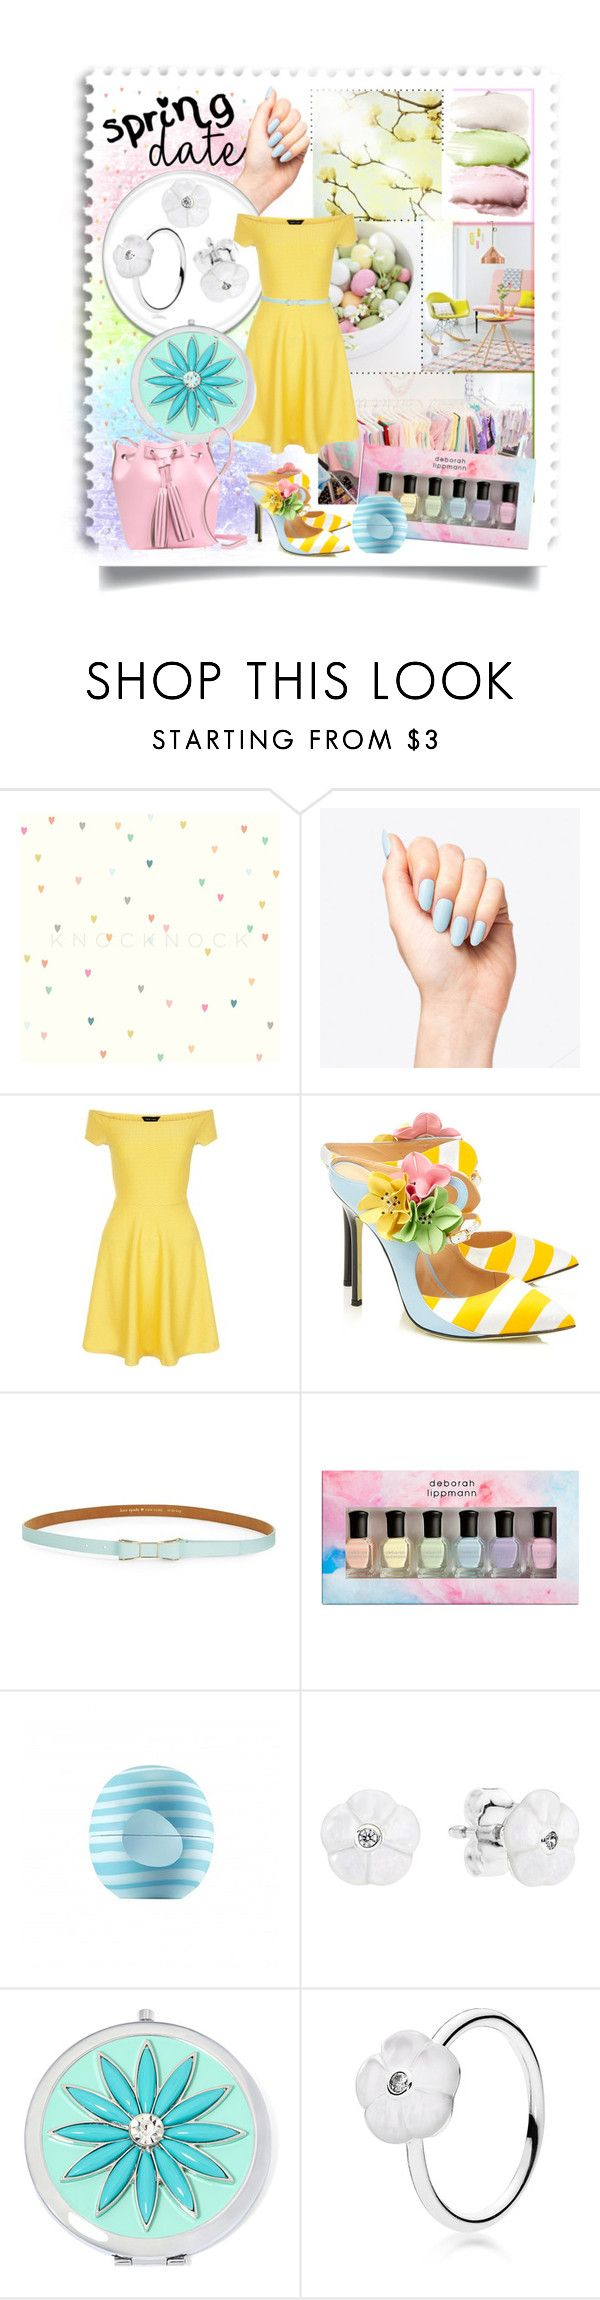 """Spring Date (Весеннее свидание)"" by kseniz13 ❤ liked on Polyvore featuring New Look, Giannico, Kate Spade, Deborah Lippmann, Eos, Pandora, Liz Claiborne and J.Crew"